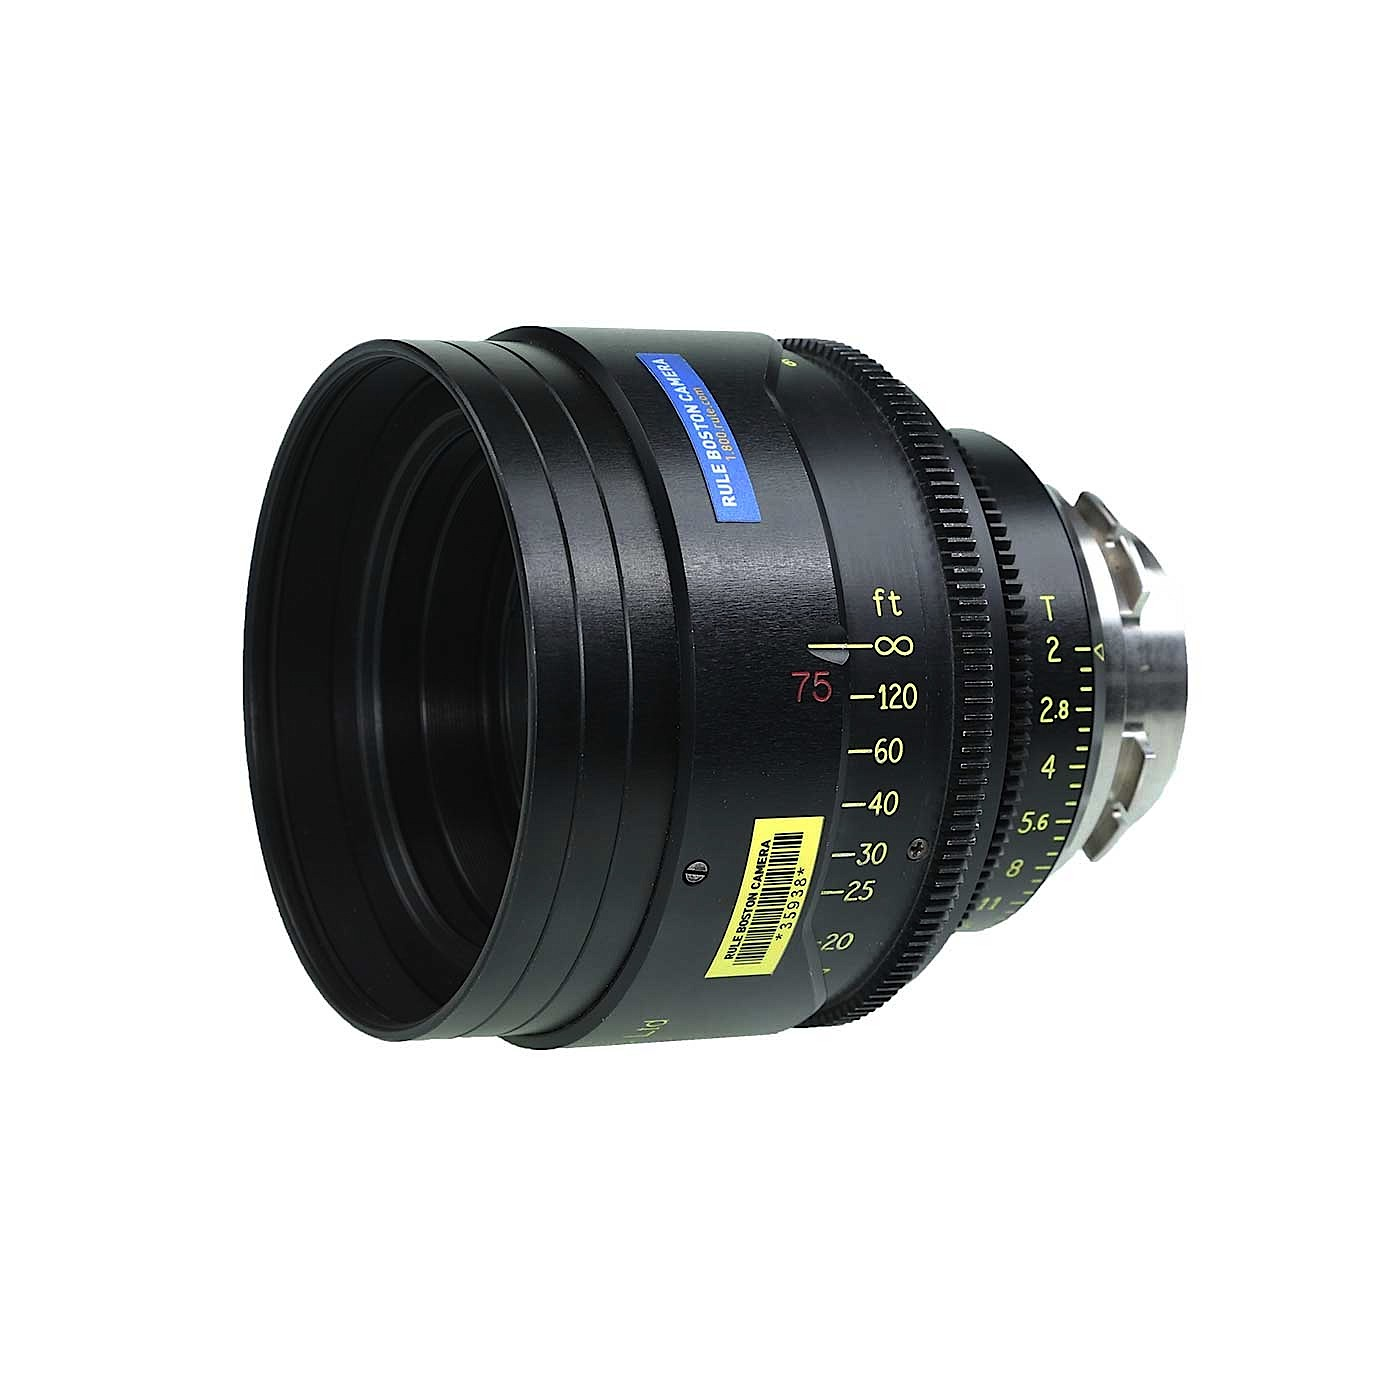 Cooke 75mm S4 PL Prime Lens